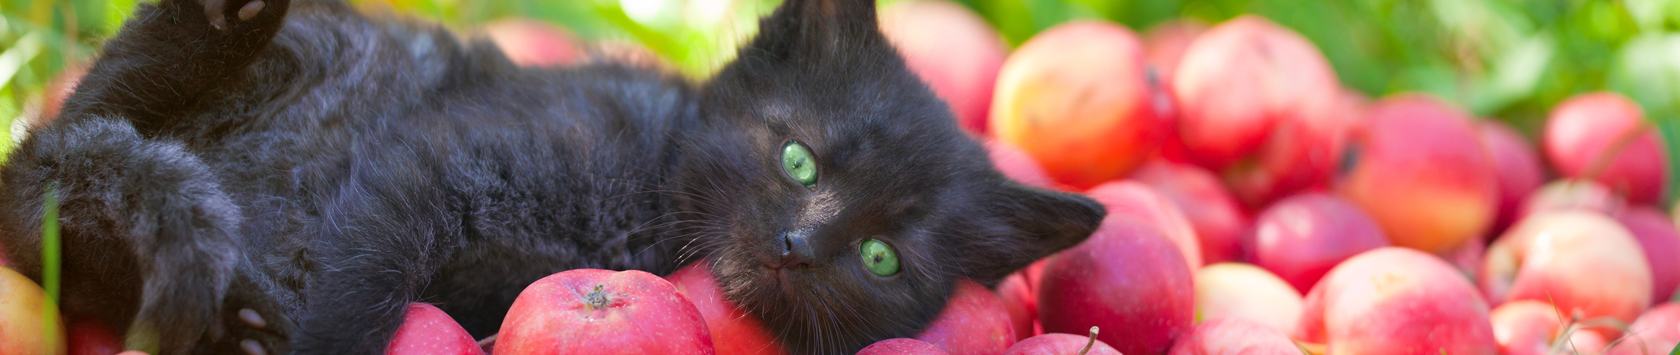 cat laying on apples